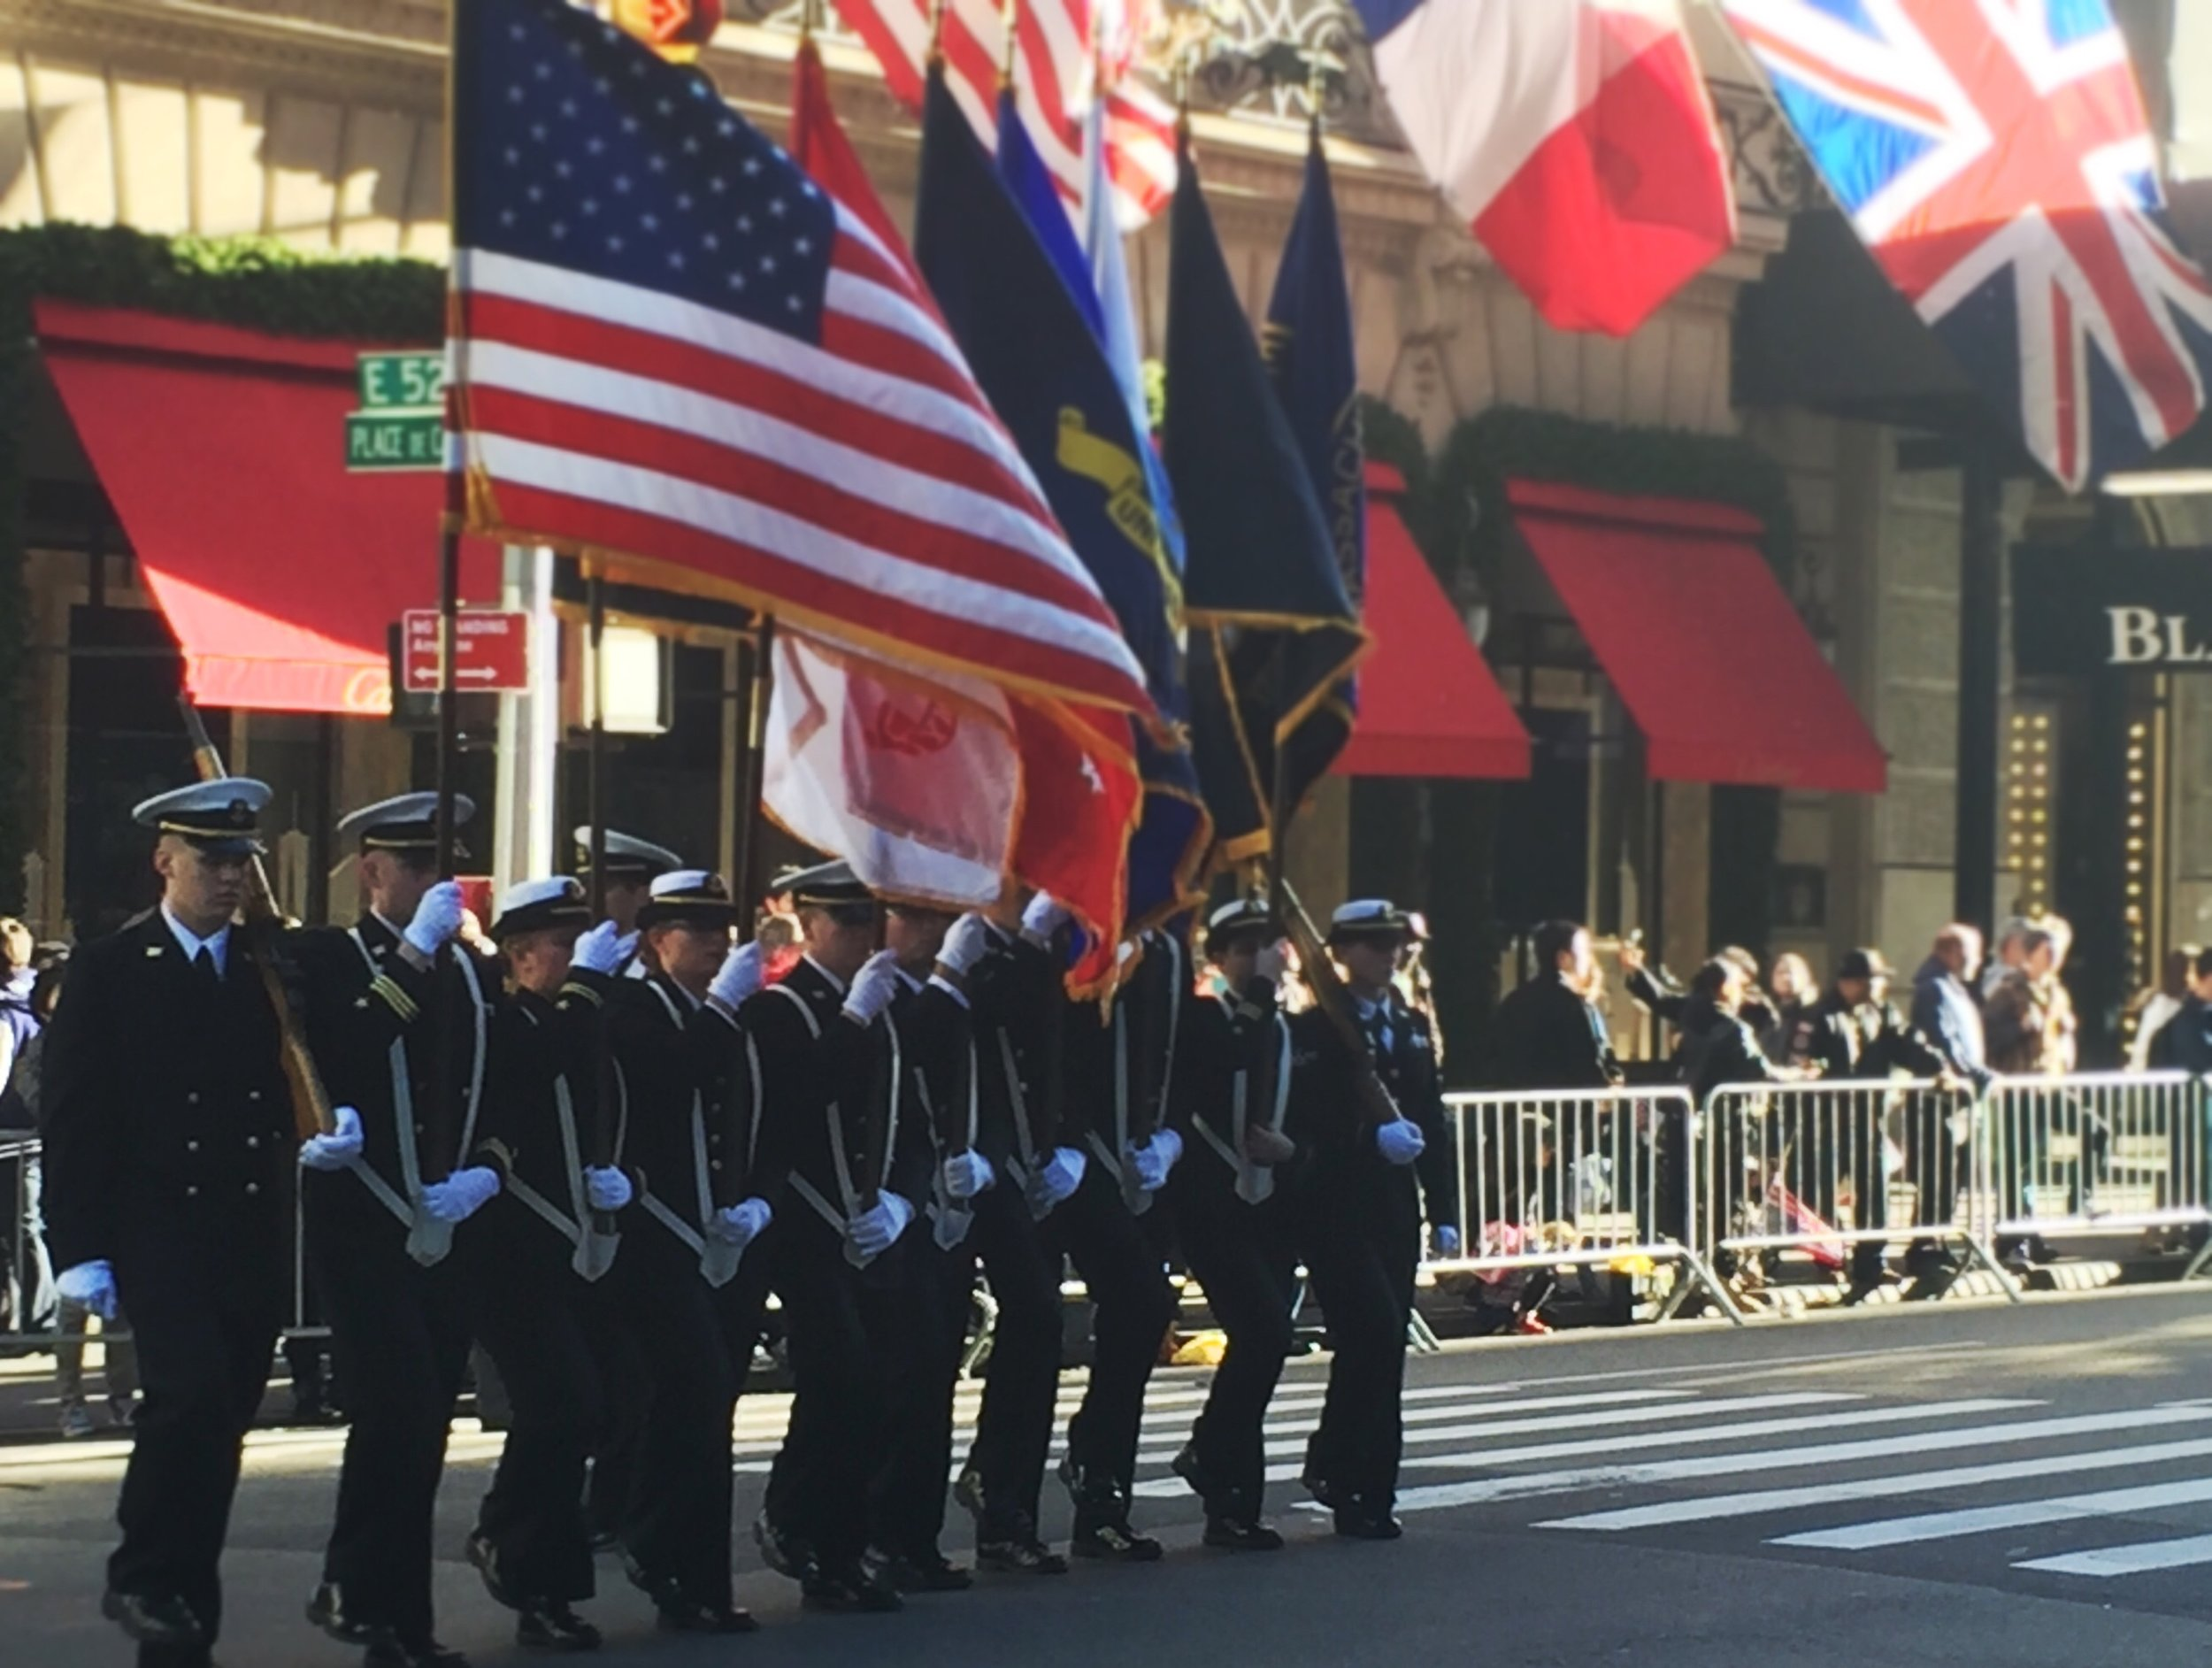 Veteran's Day Parade, 11/11/2016, New York City - Photo by Tim